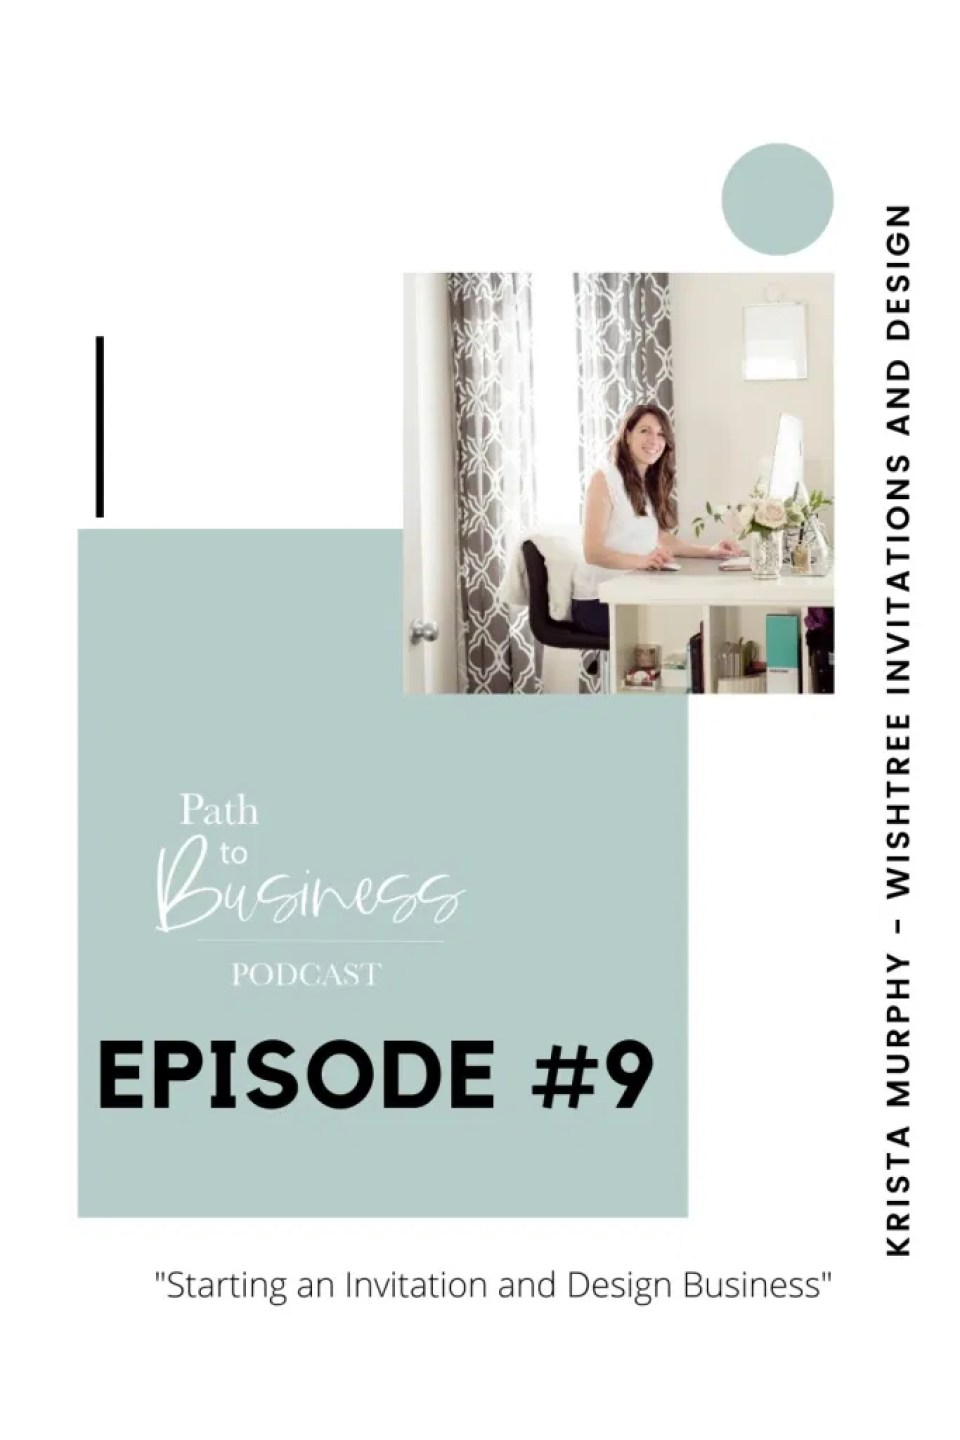 Starting an Invitation and Design Business - Krista Murphy - WishTree Invitations and Design  Path to Business Podcast - Bethany Barrette from Grey Loft Studio chats with Krista about building an Invitation and Design Business.